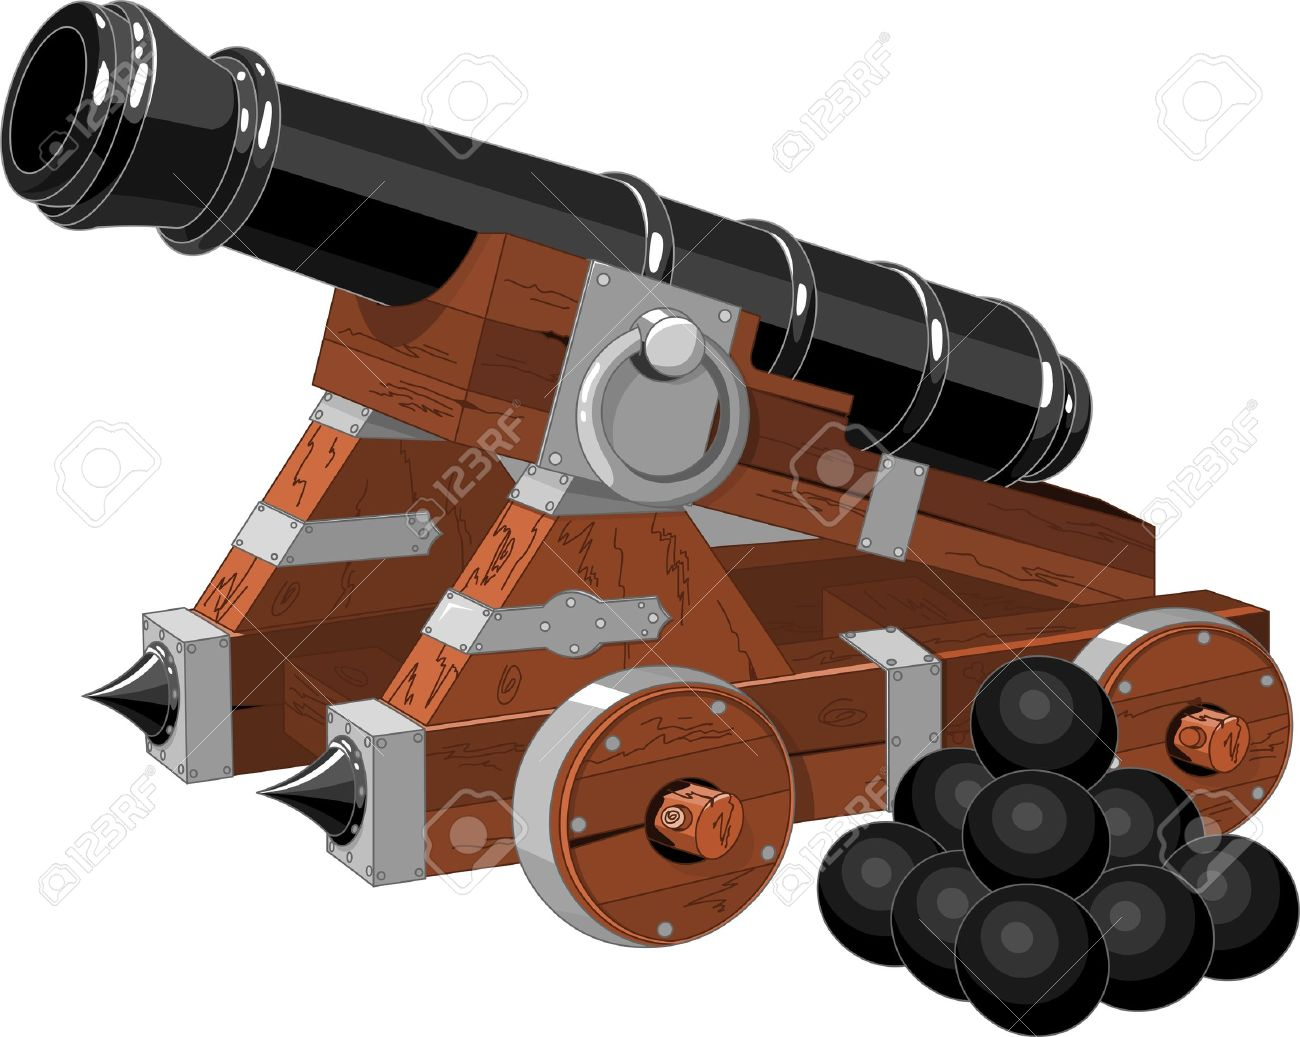 old pirate ship cannon and cannon balls royalty free cliparts